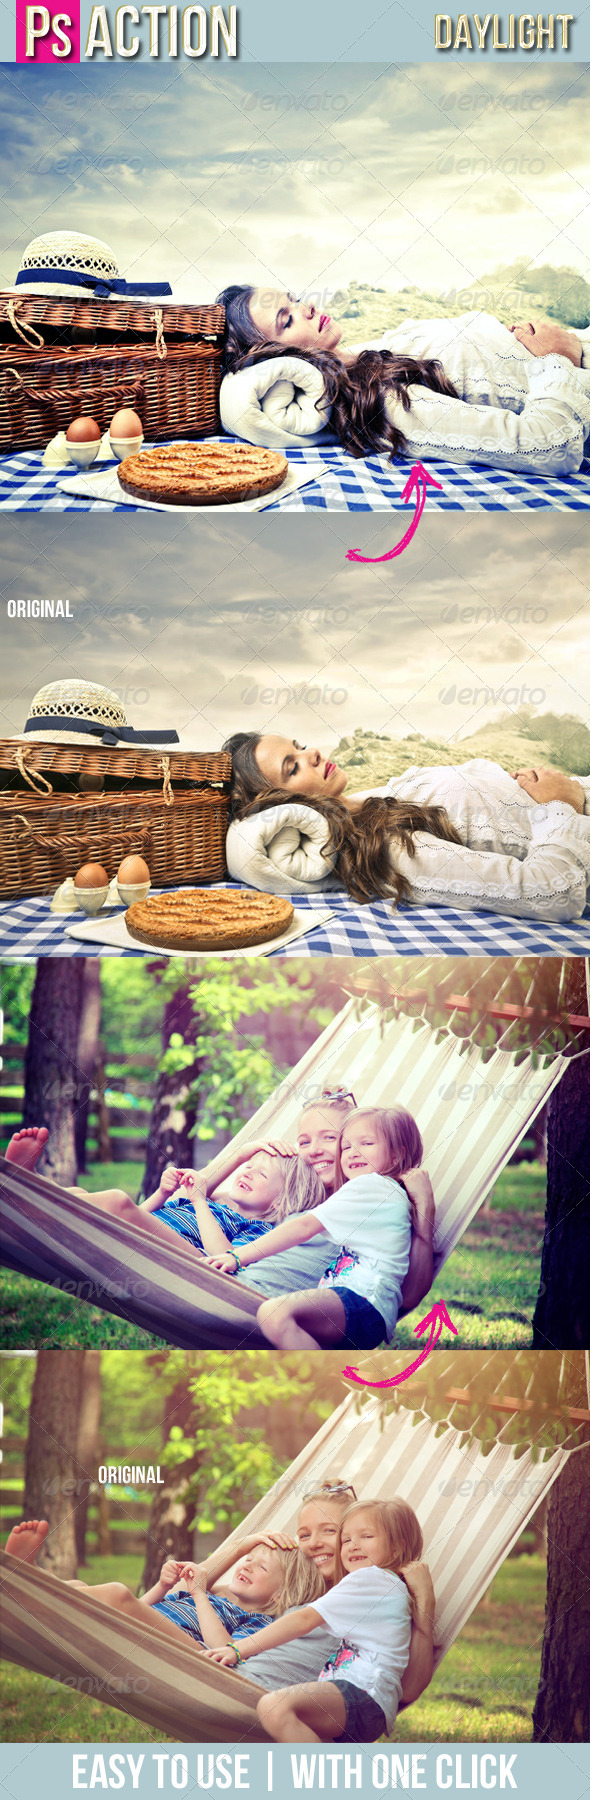 GraphicRiver Daylight PS Action 22 7180862